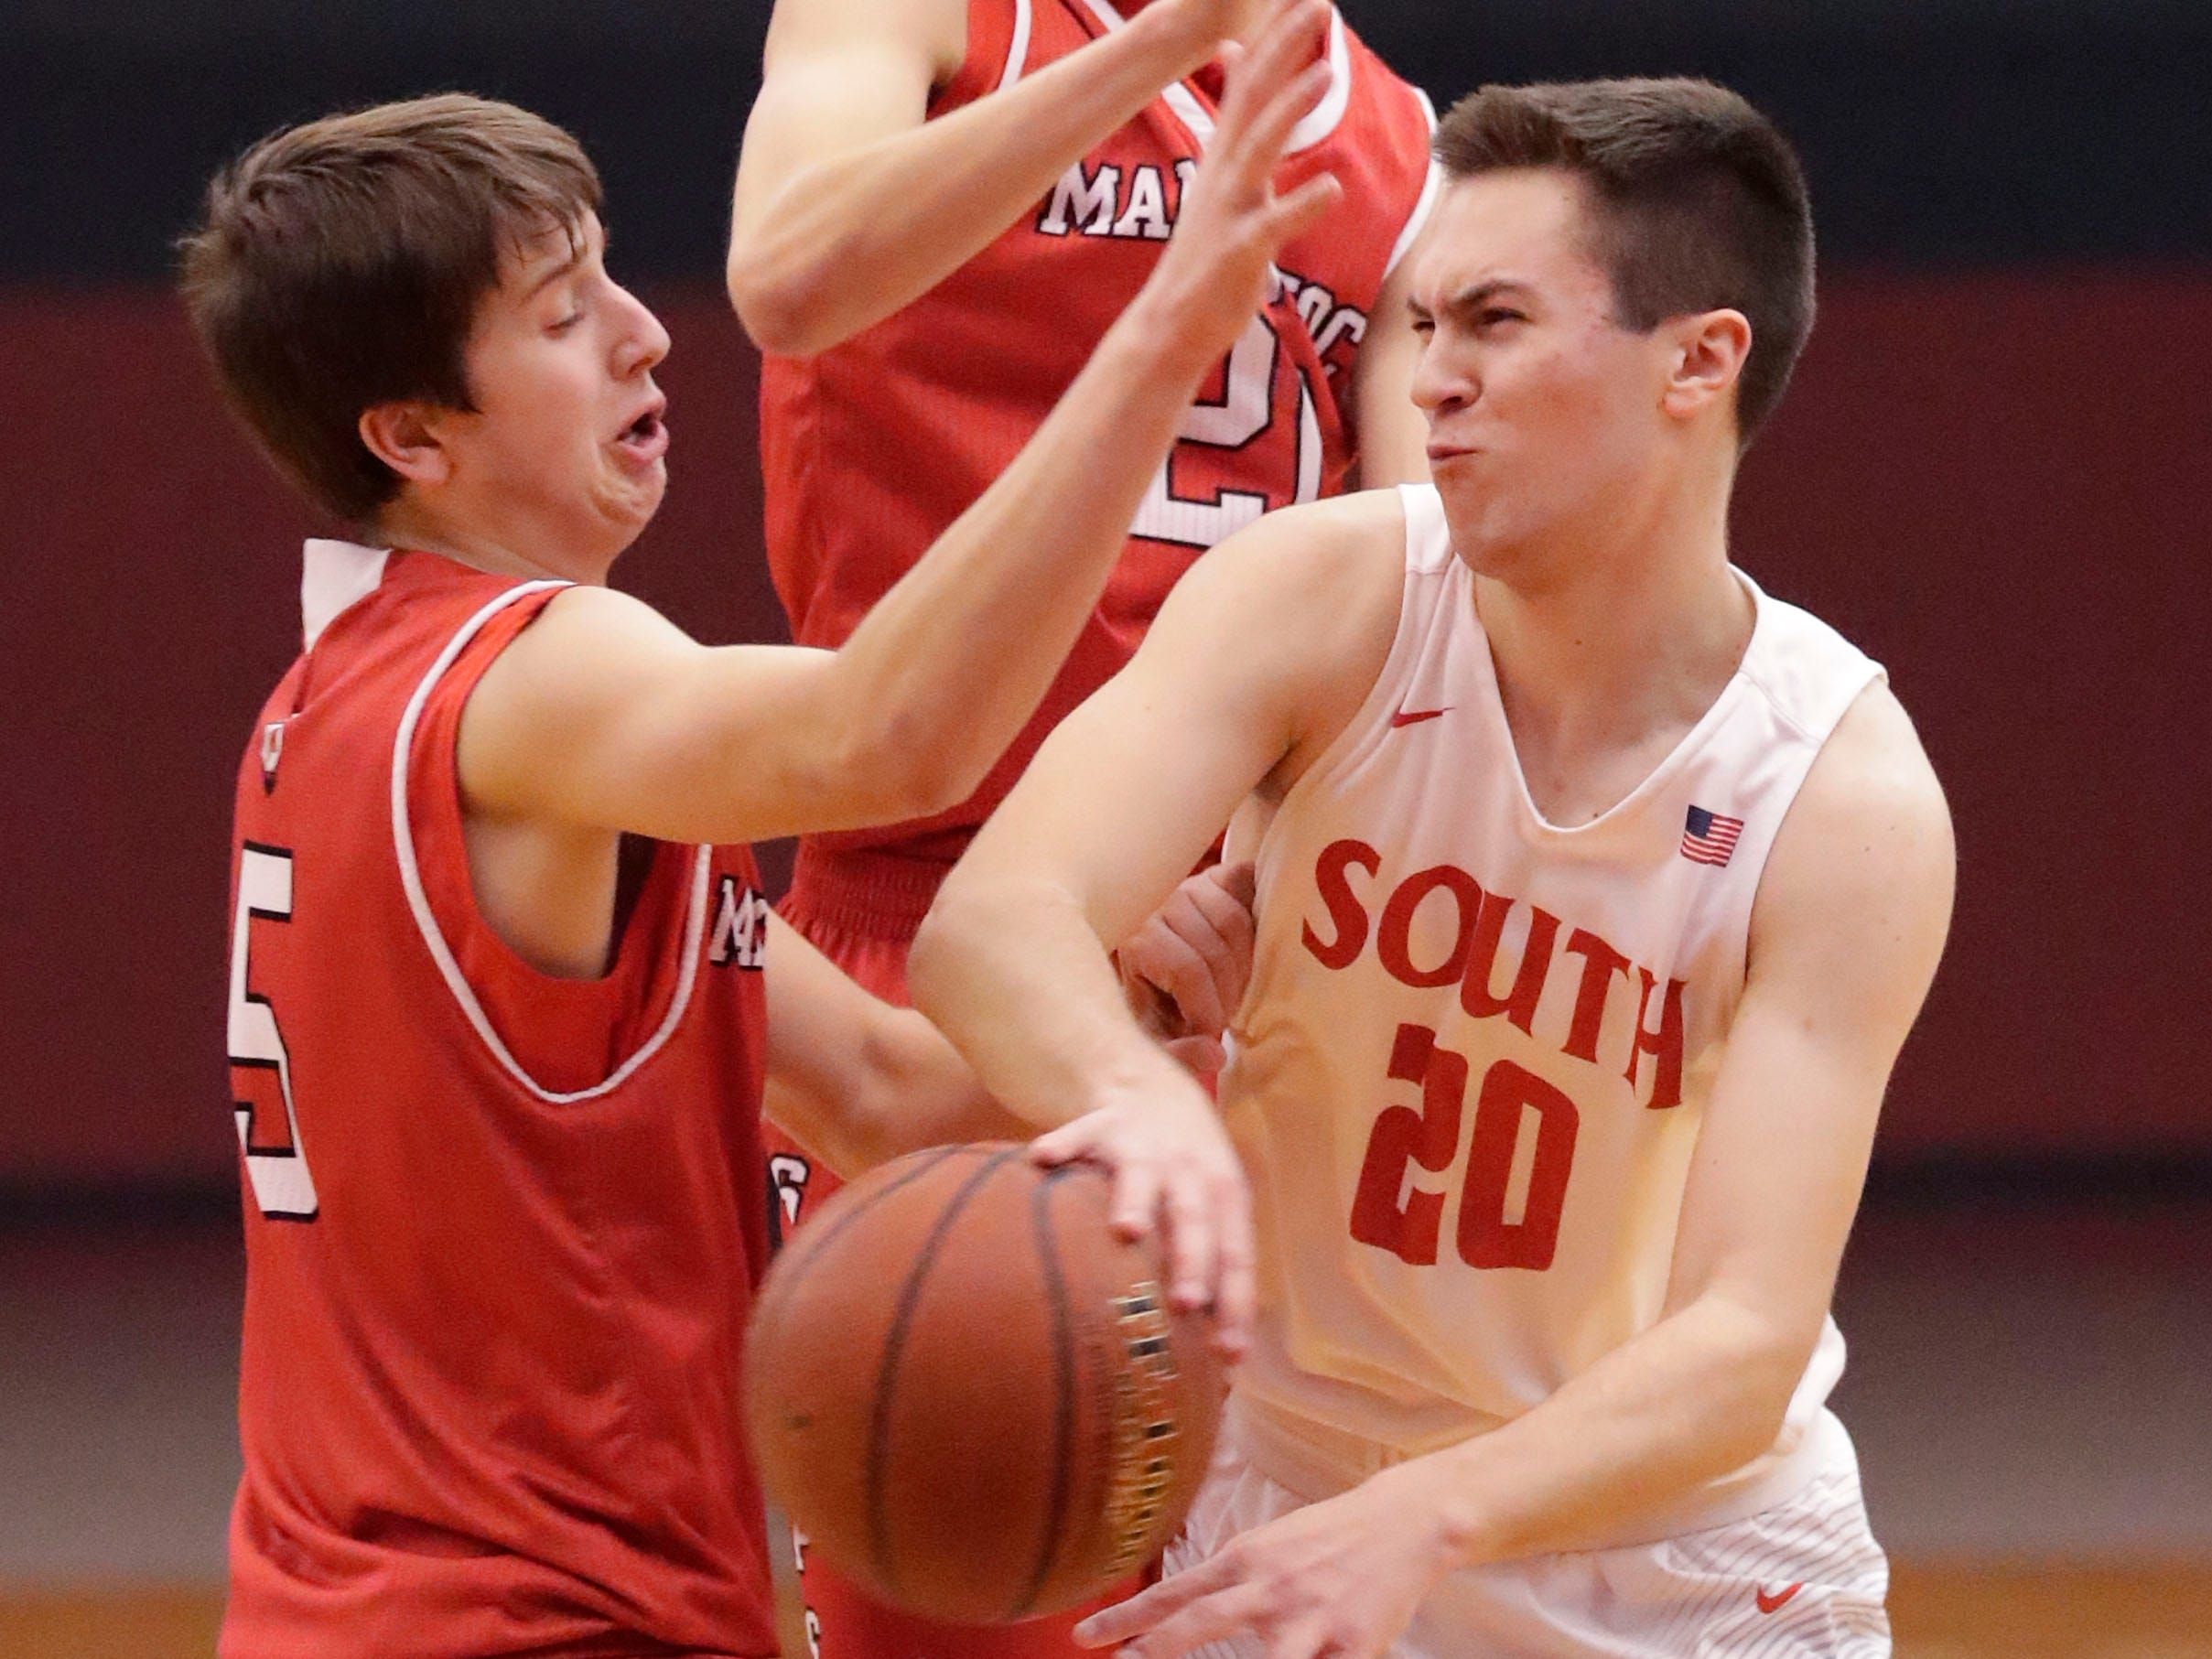 Sheboygan South's Nick Larson (20) passes the ball around two Manitowoc Lincoln players, Tuesday, February 26, 2019, in Sheboygan, Wis.